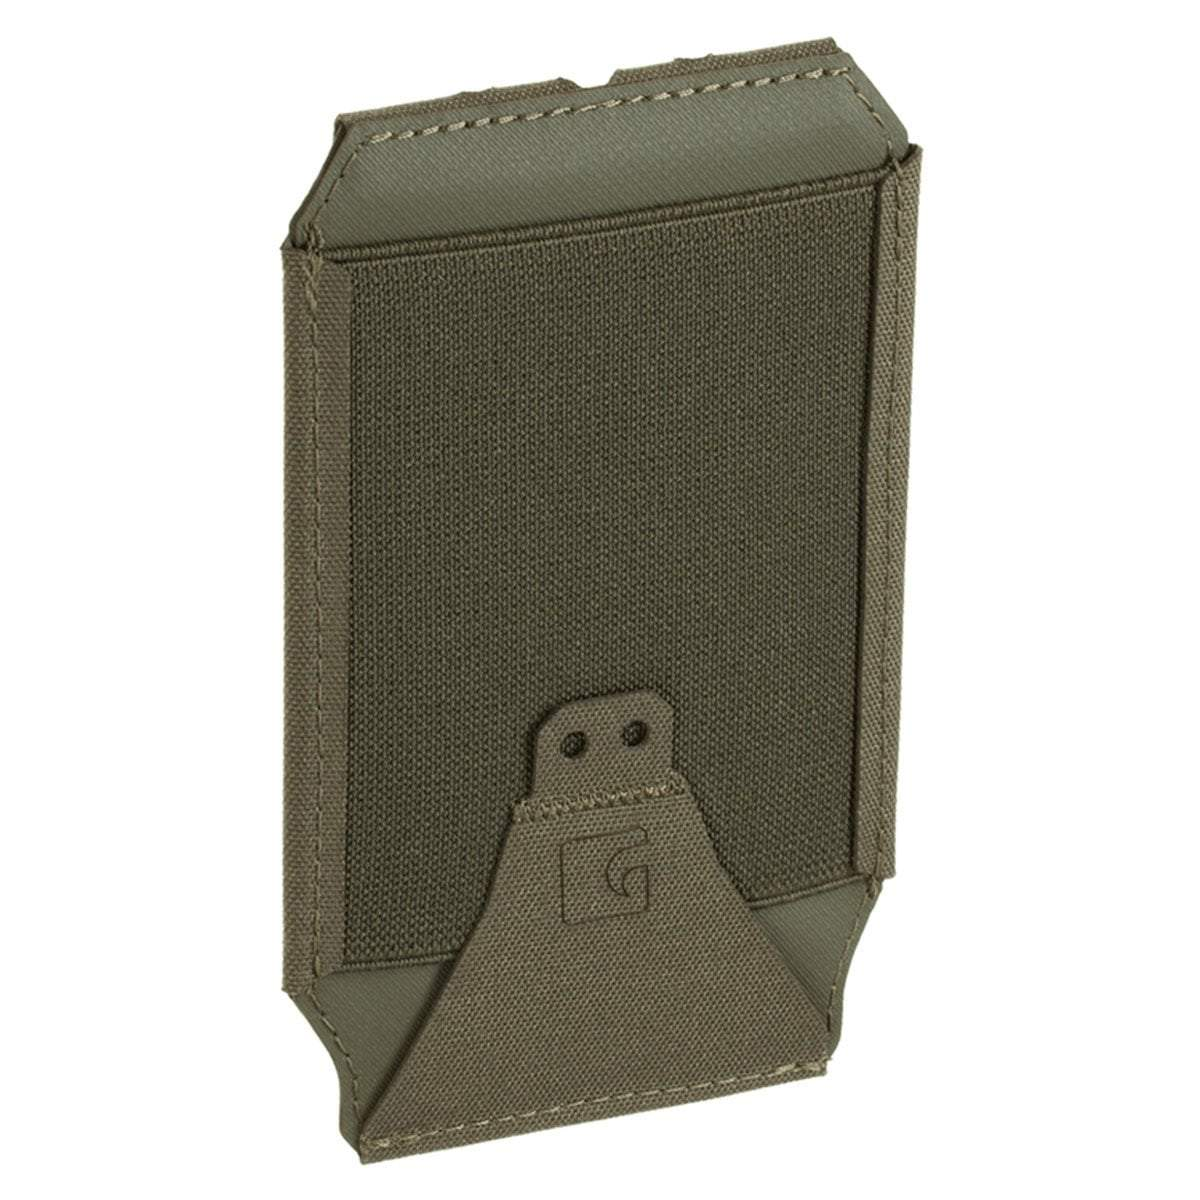 Clawgear 5.56mm Rifle Low Profile Mag Pouch | UKMCPro